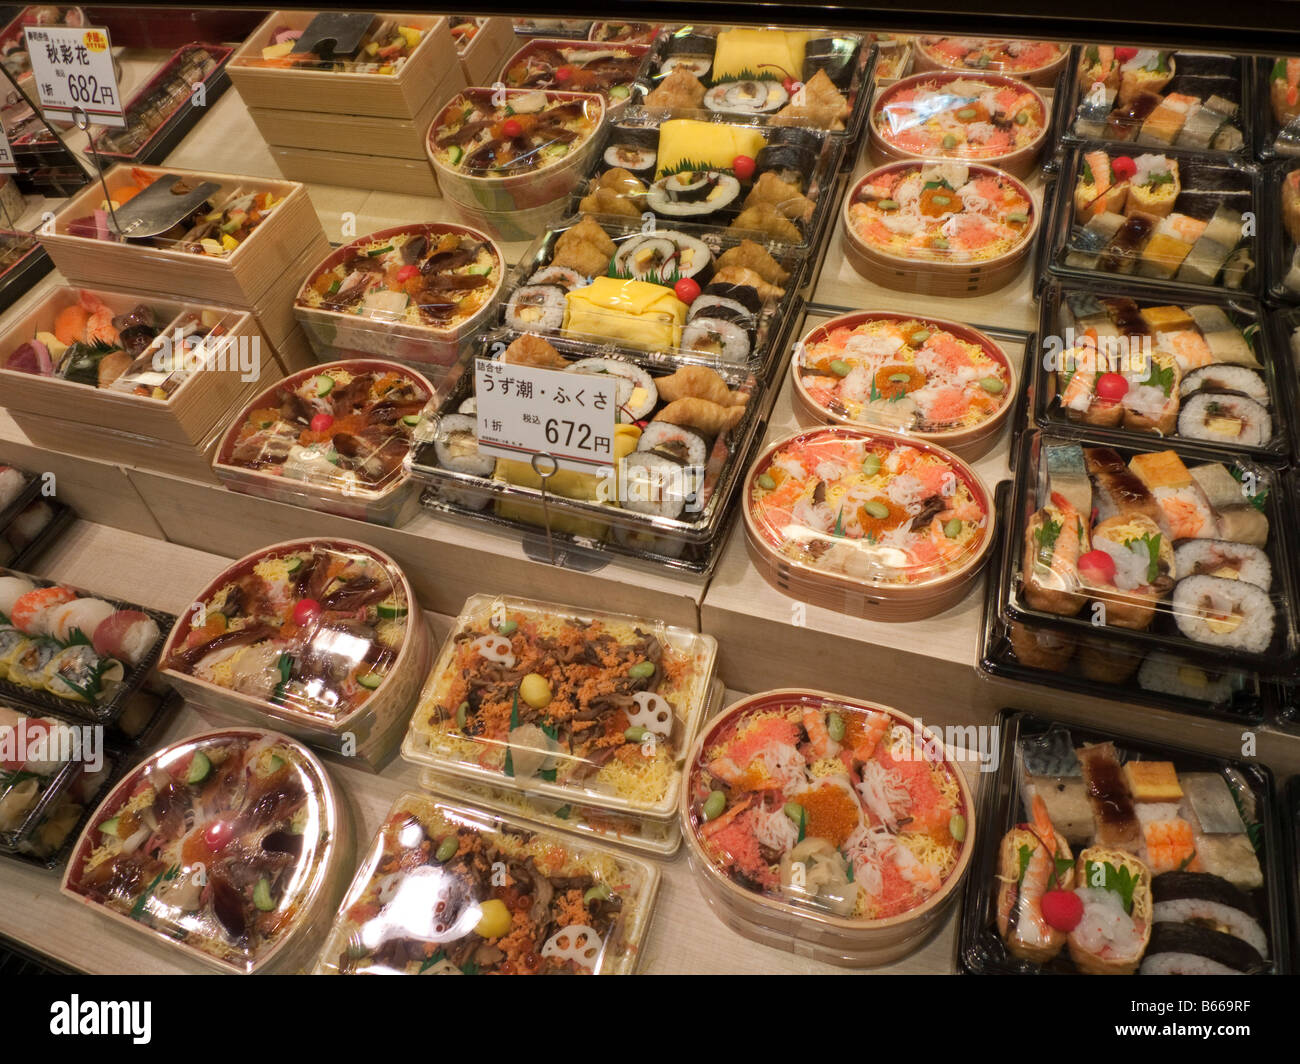 Bento Lunch Boxes On Sale At Oita Railway Station Japan